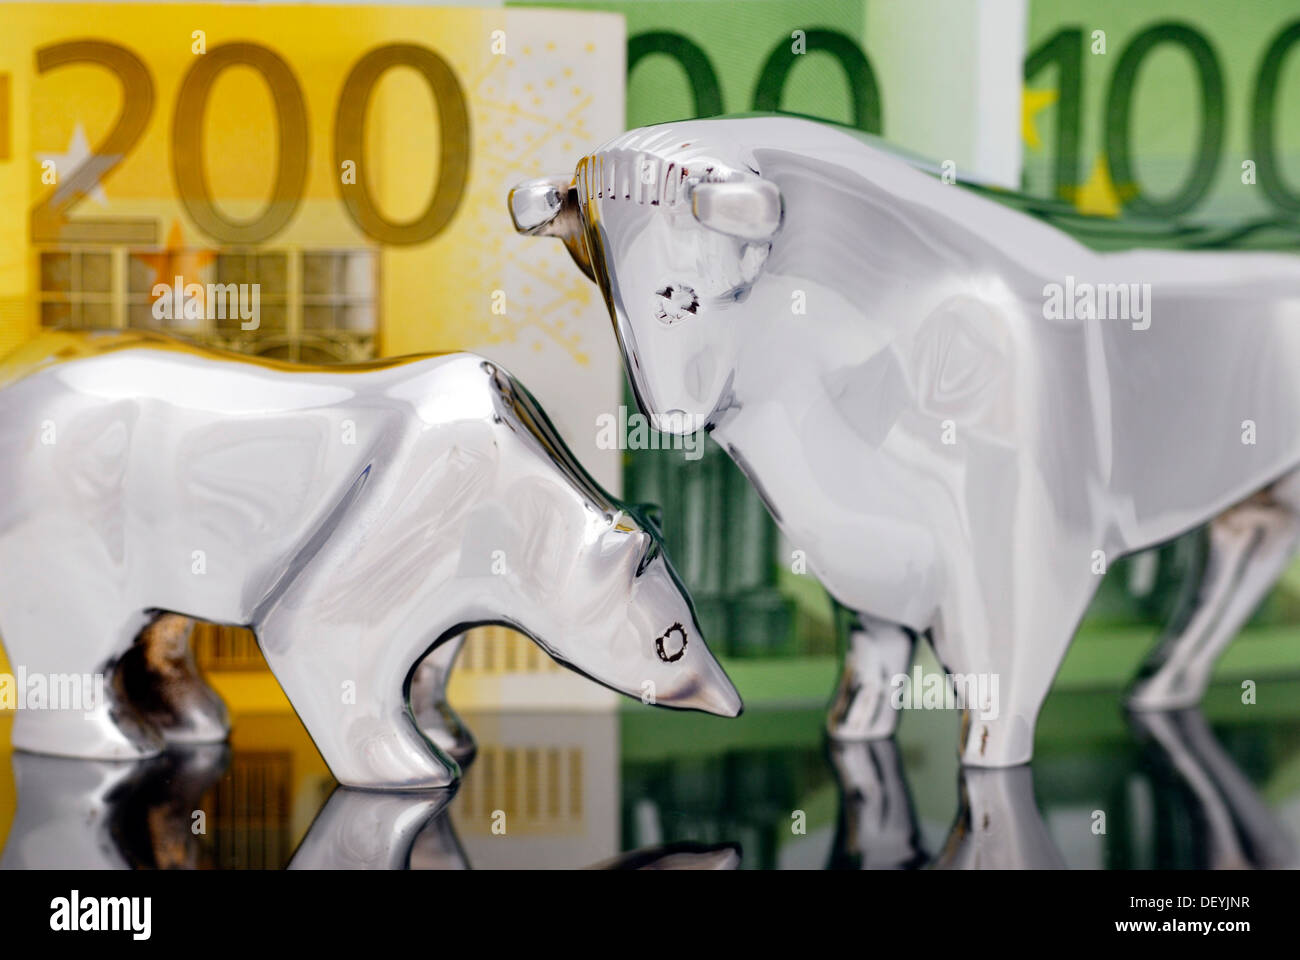 Stock Market Symbols Bull And Bear In Front Of Euro Banknotes Stock